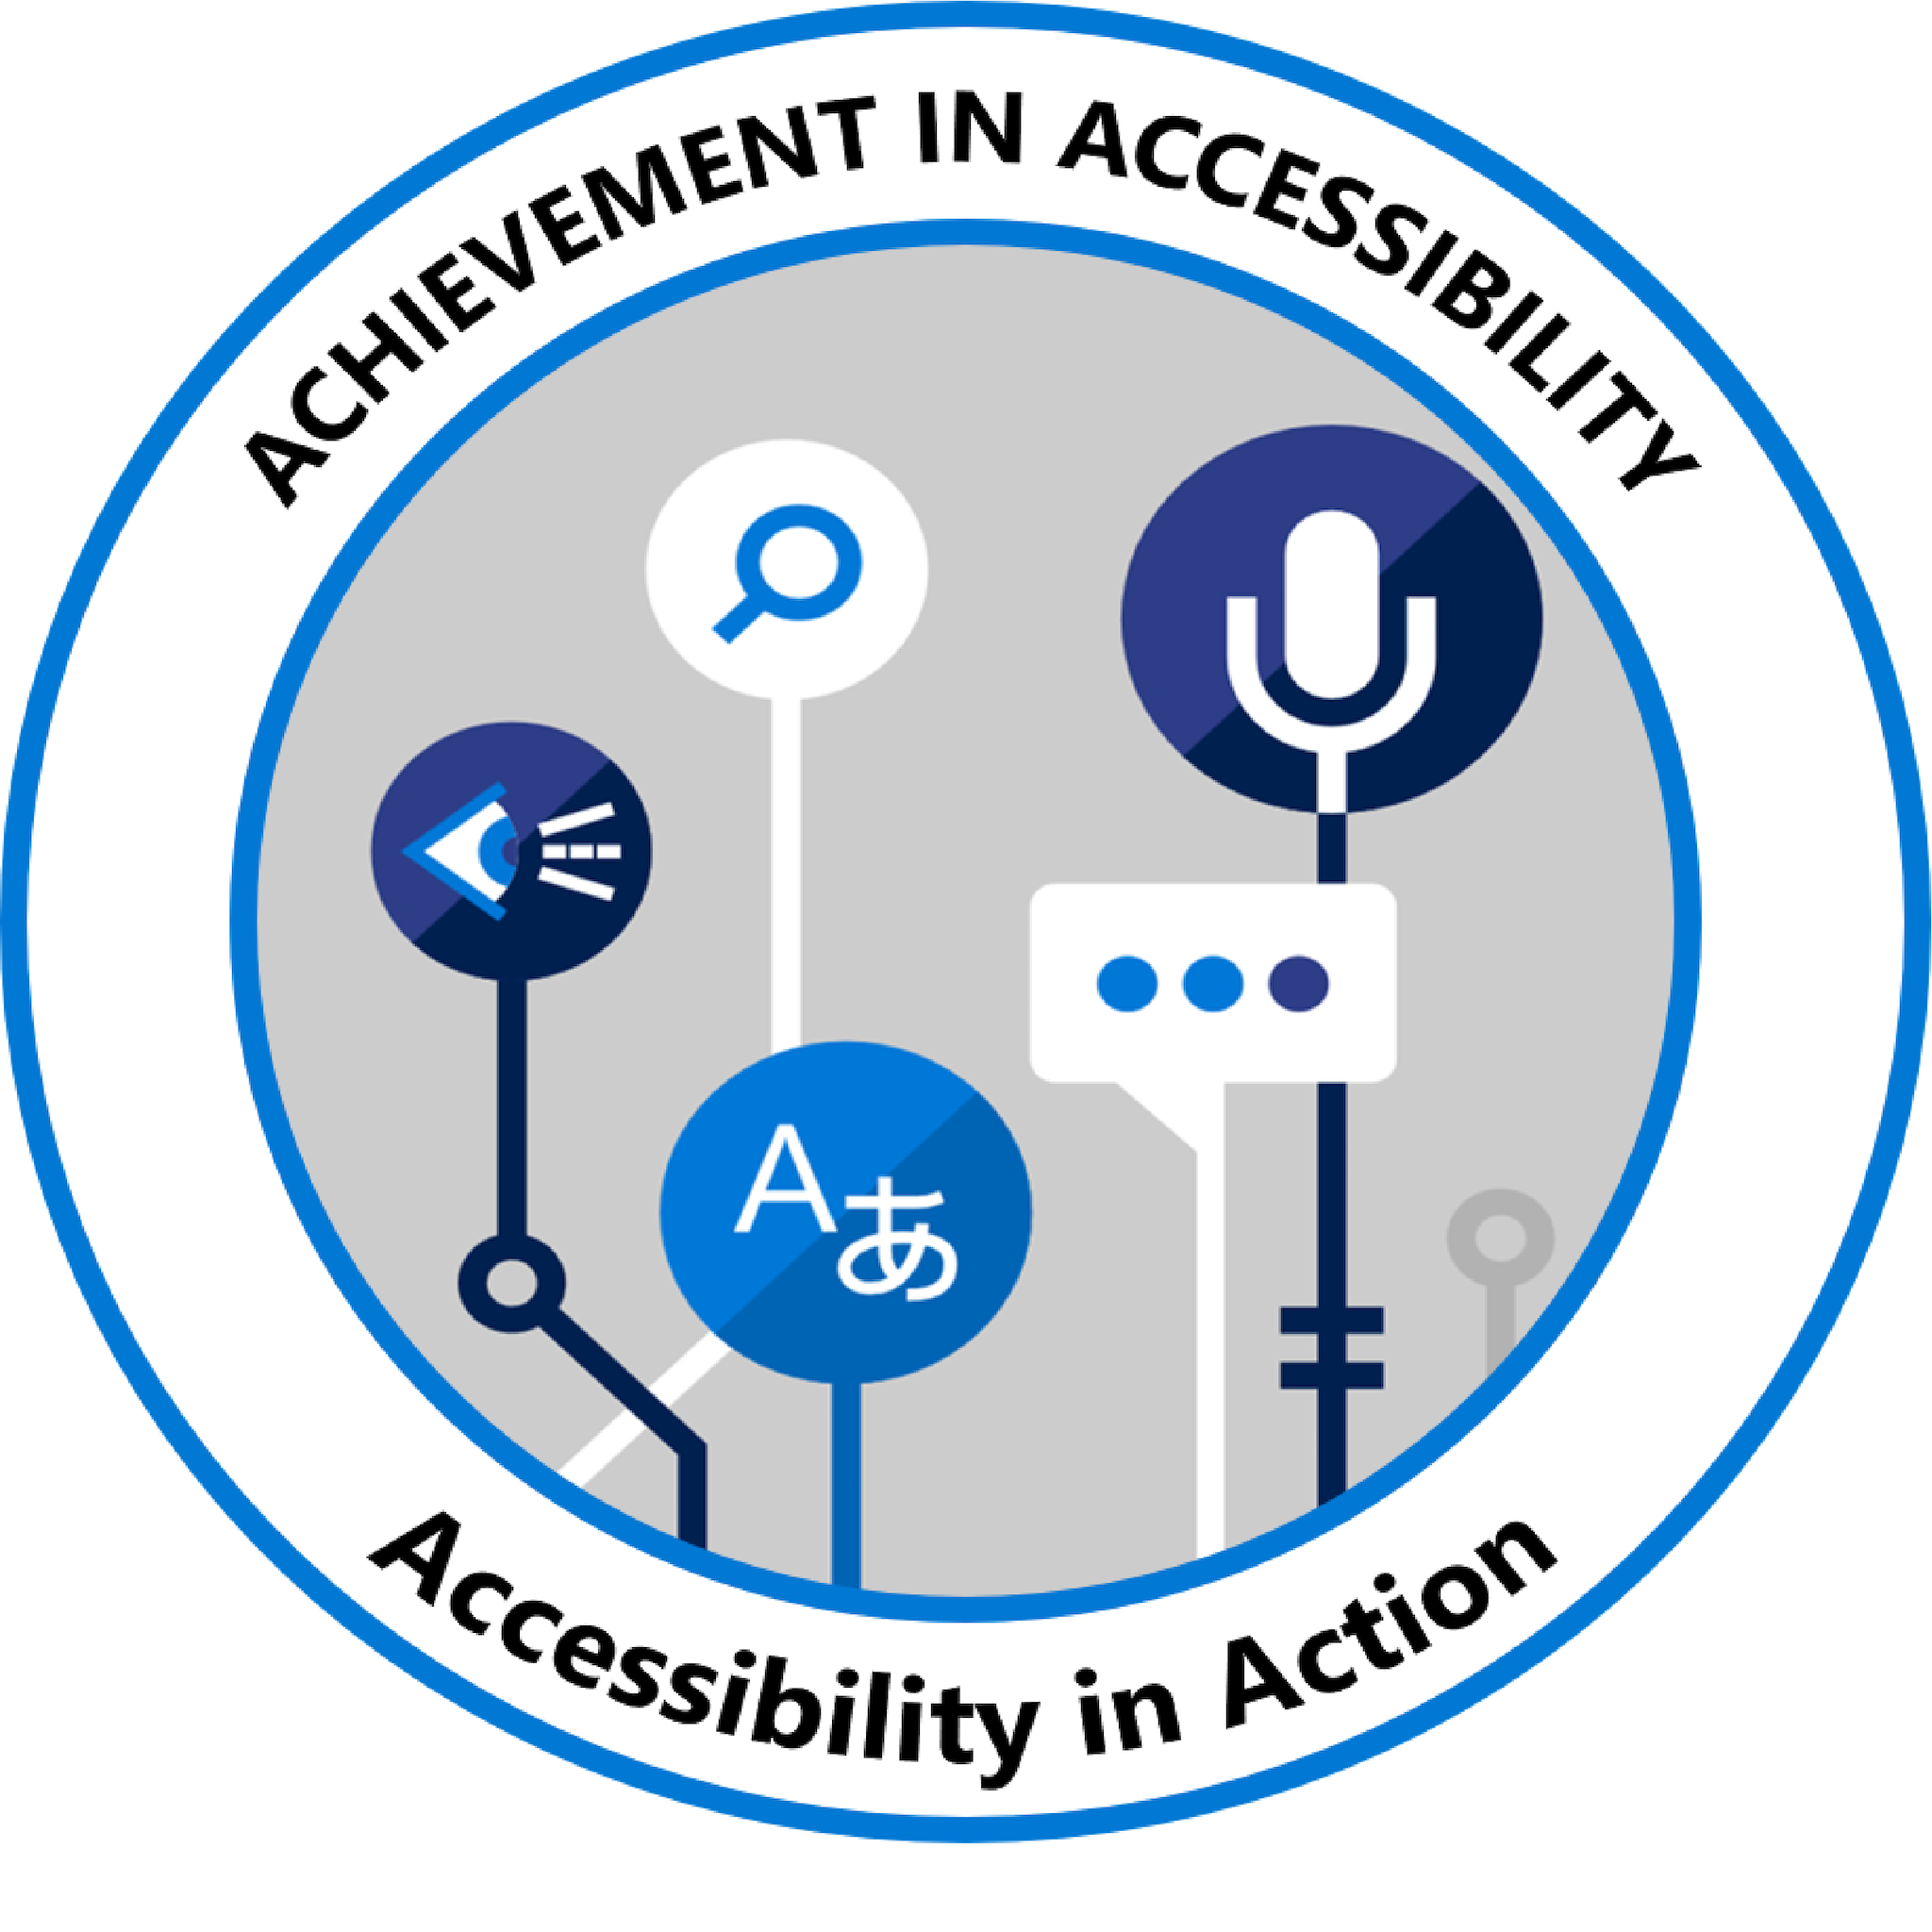 Accessibility in Action